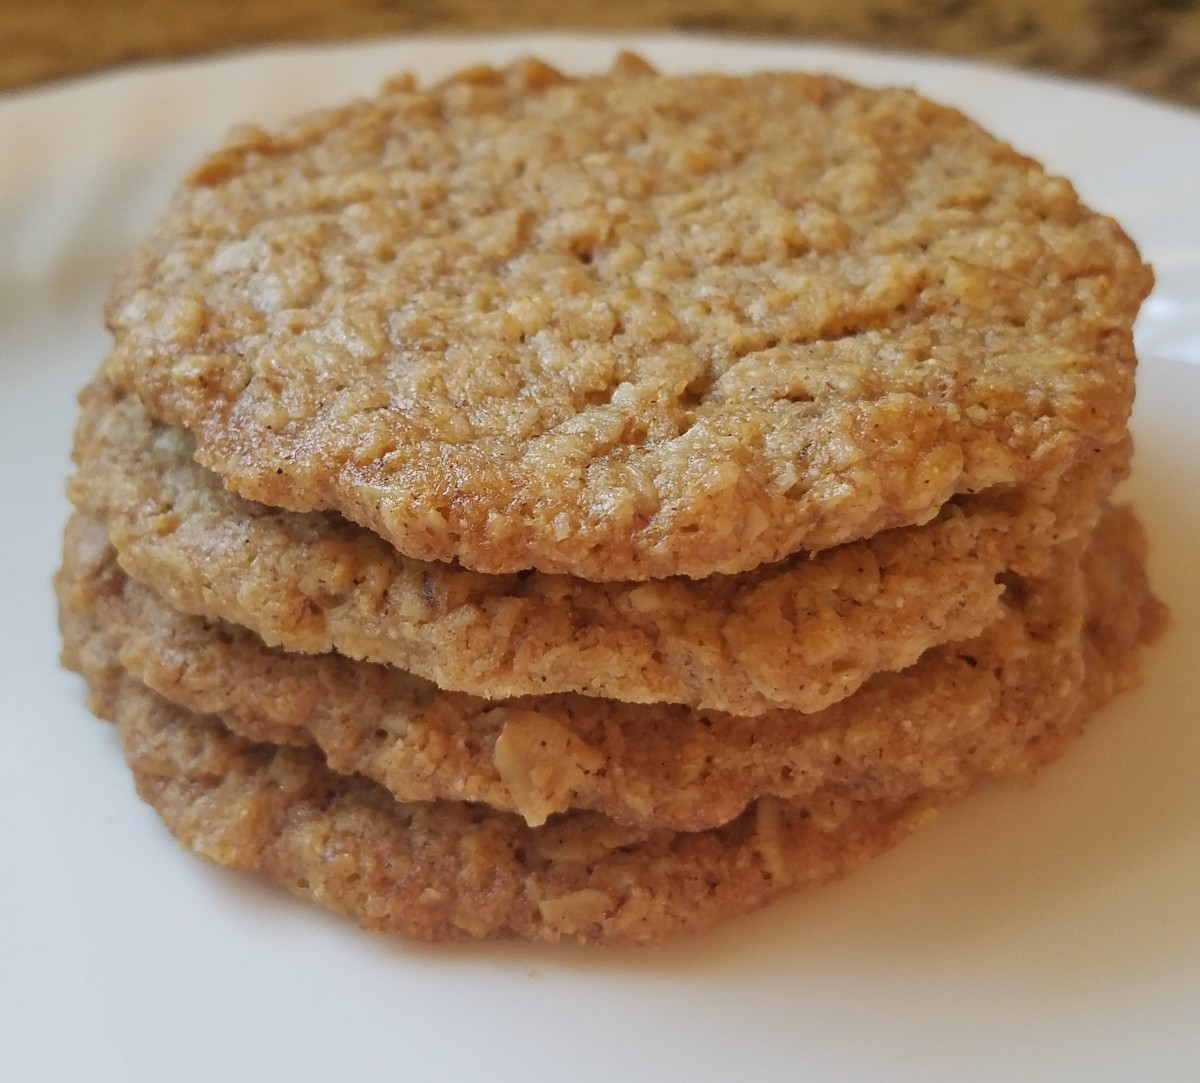 You'd Never Know It's Vegan: Crispy Oatmeal Cookie Recipe